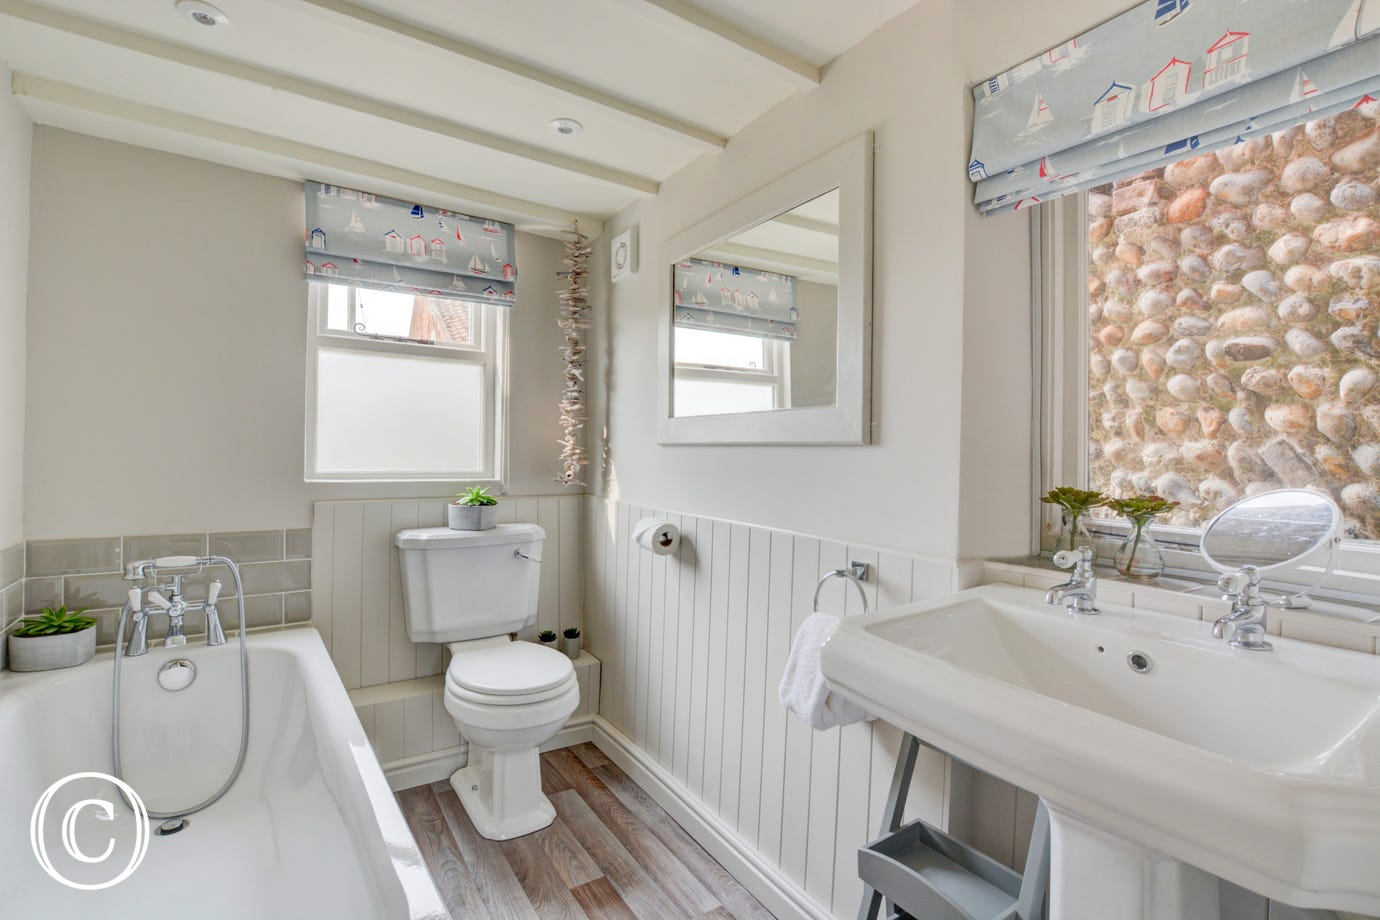 Bathroom with bath, hand held shower, washbasin and wc